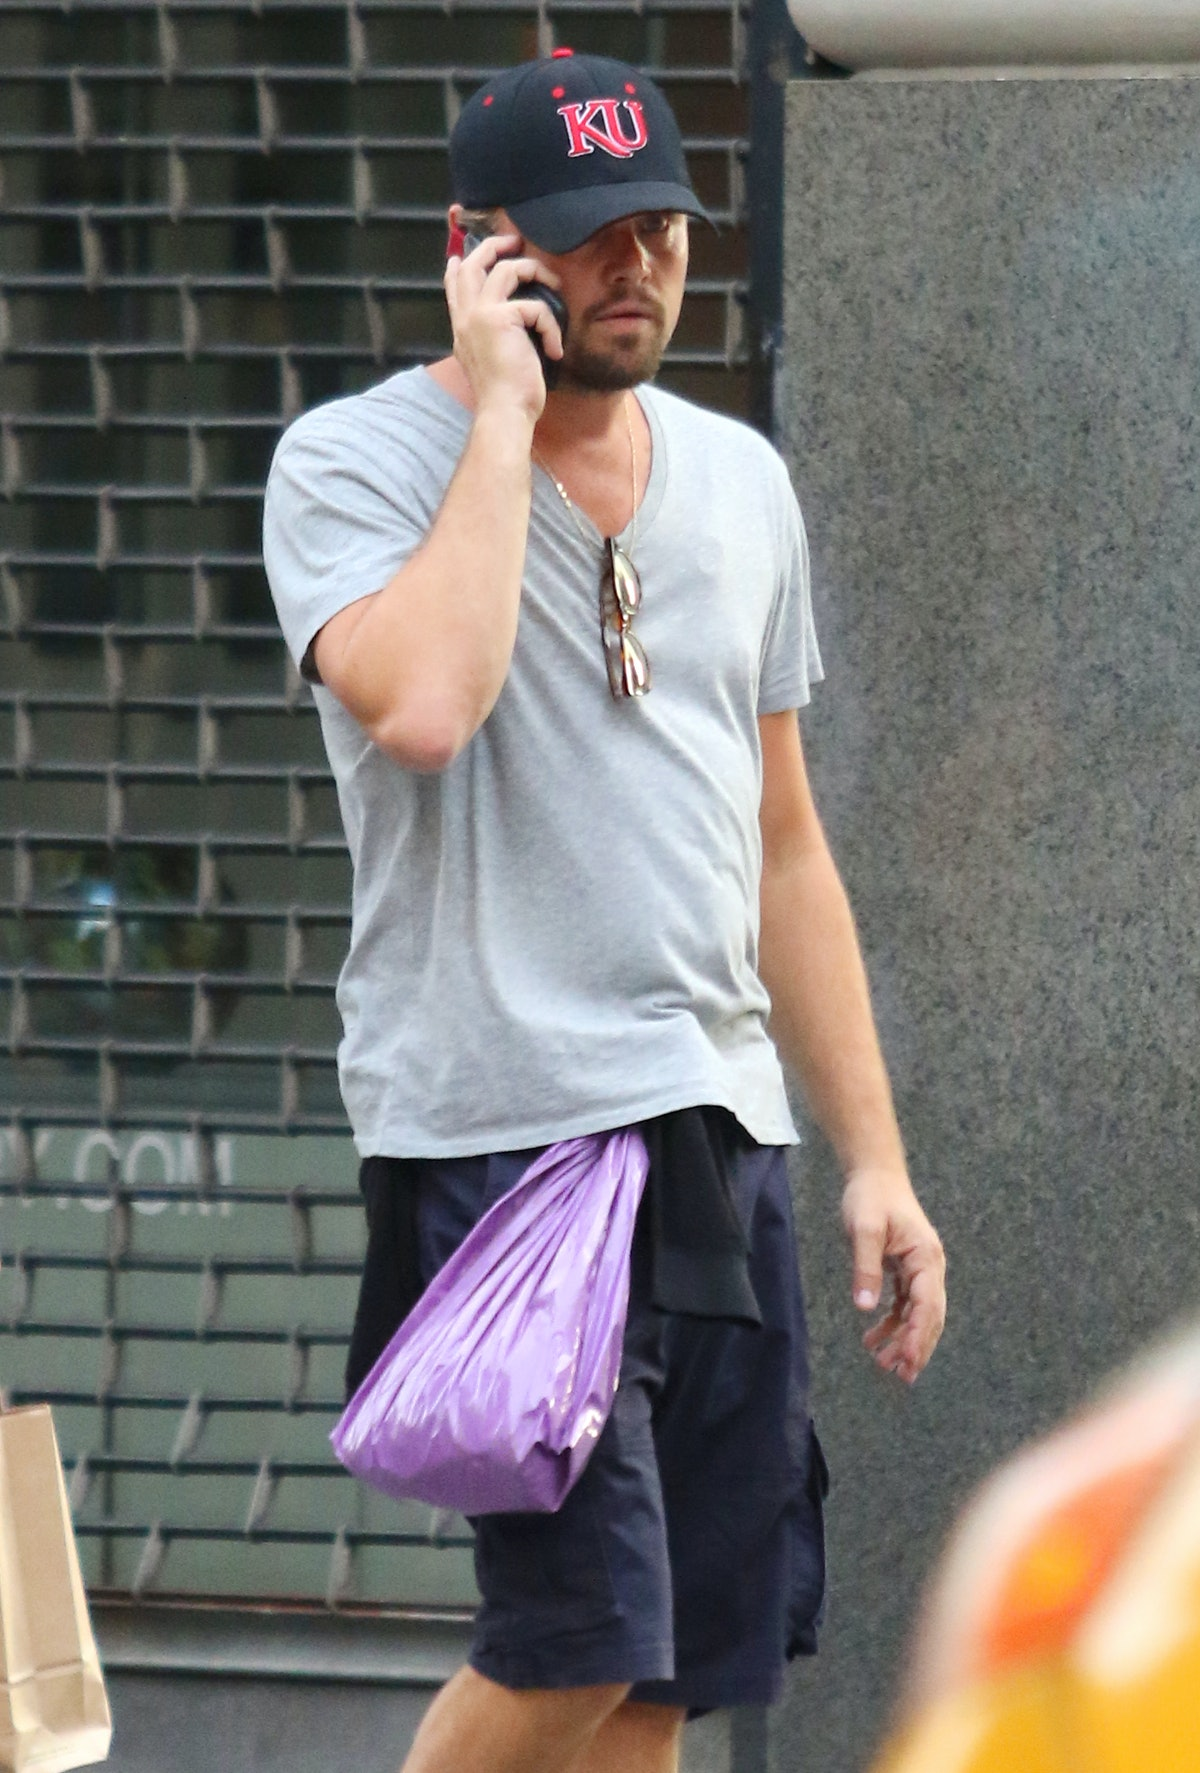 Leonardo DiCaprio wears Zio Patch on left side of chest while on a long walk in NYC